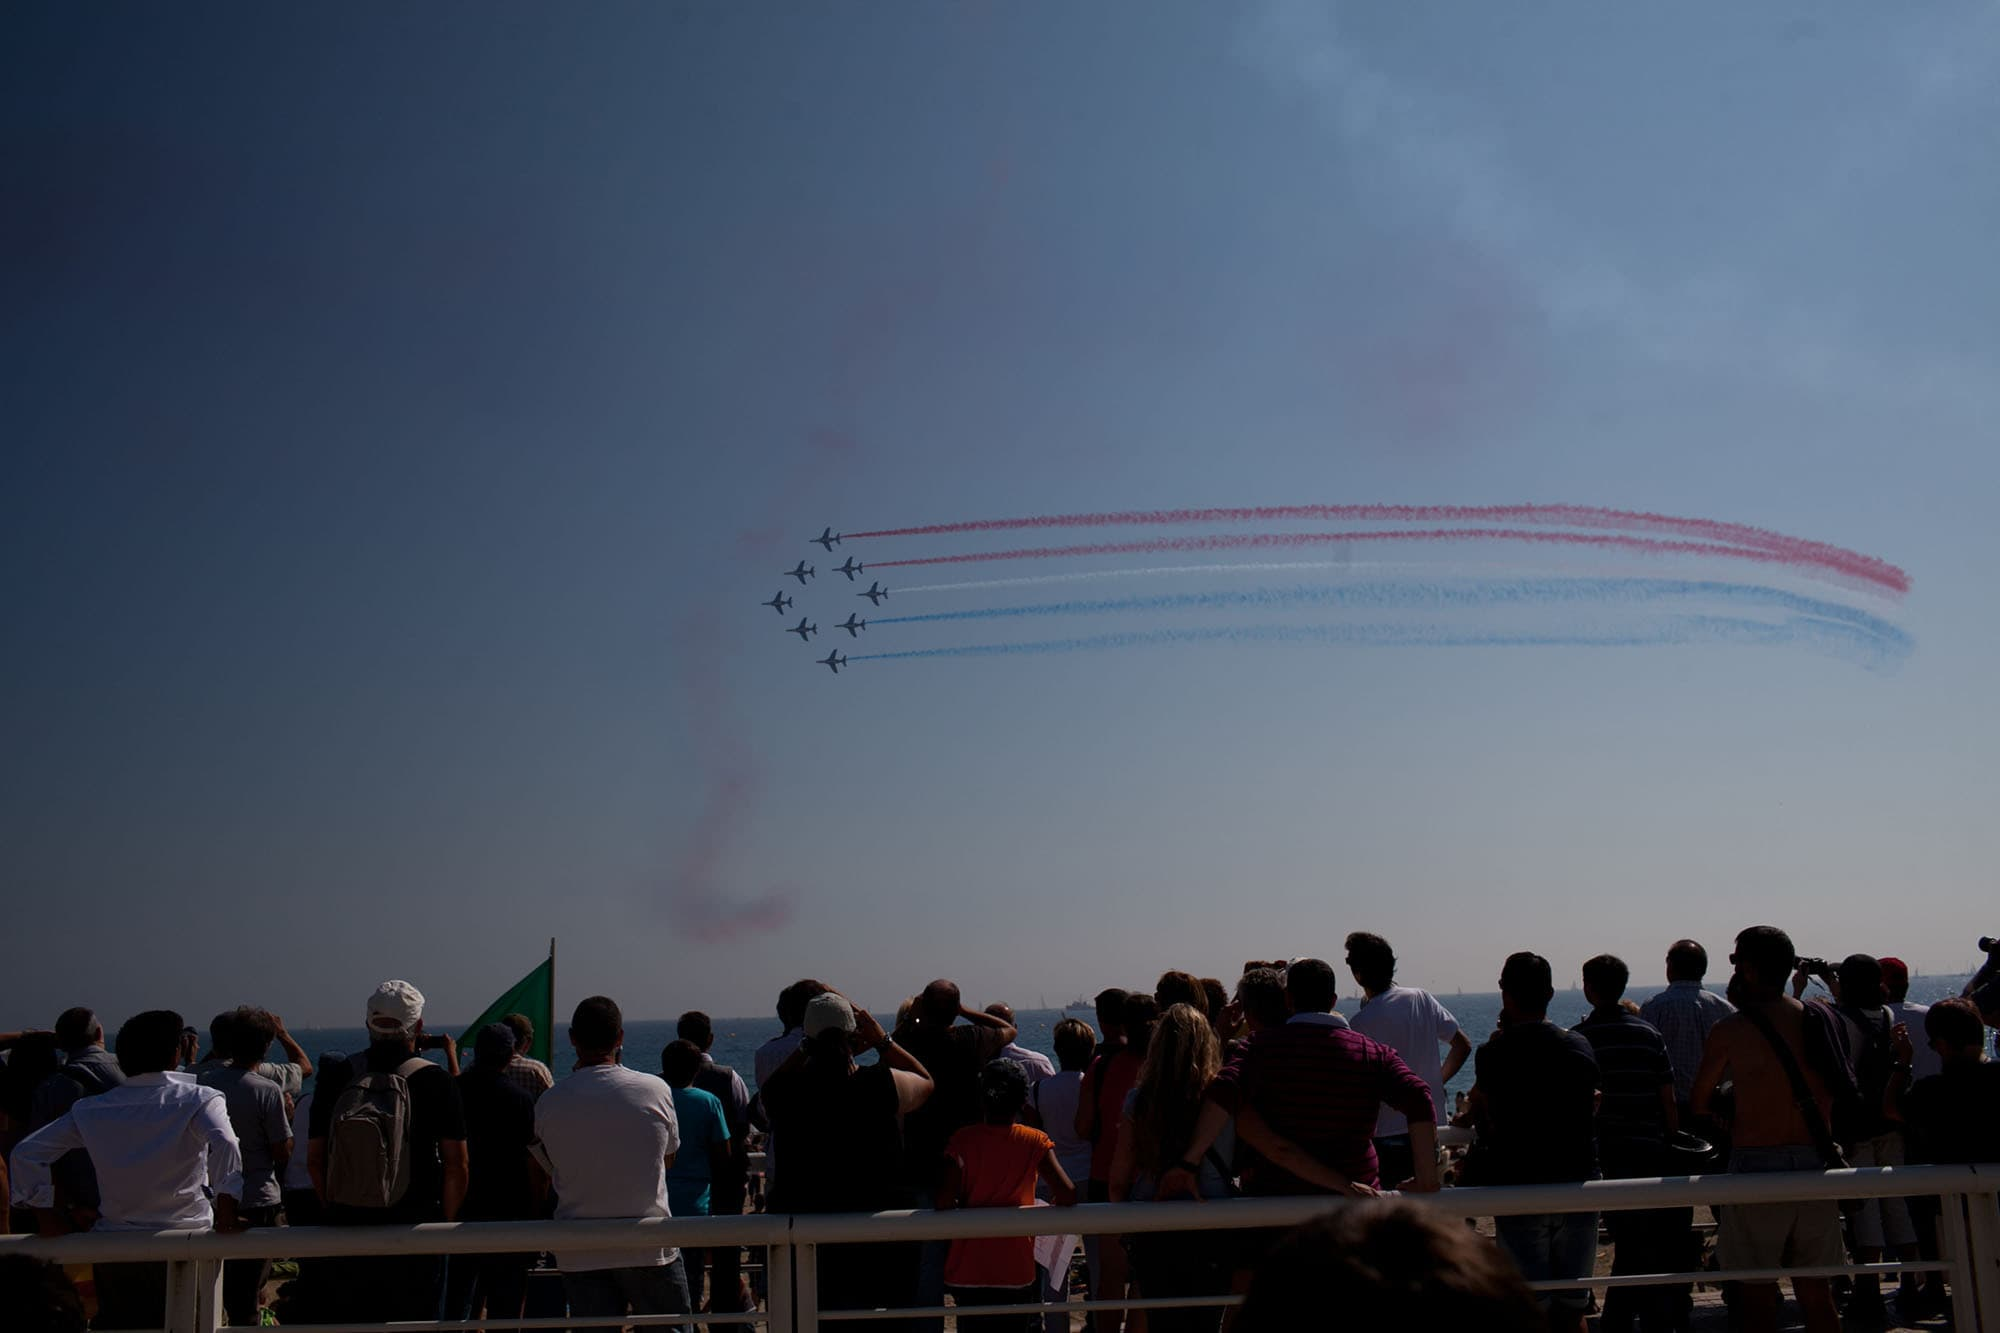 Air Show in Barcelona, Spain